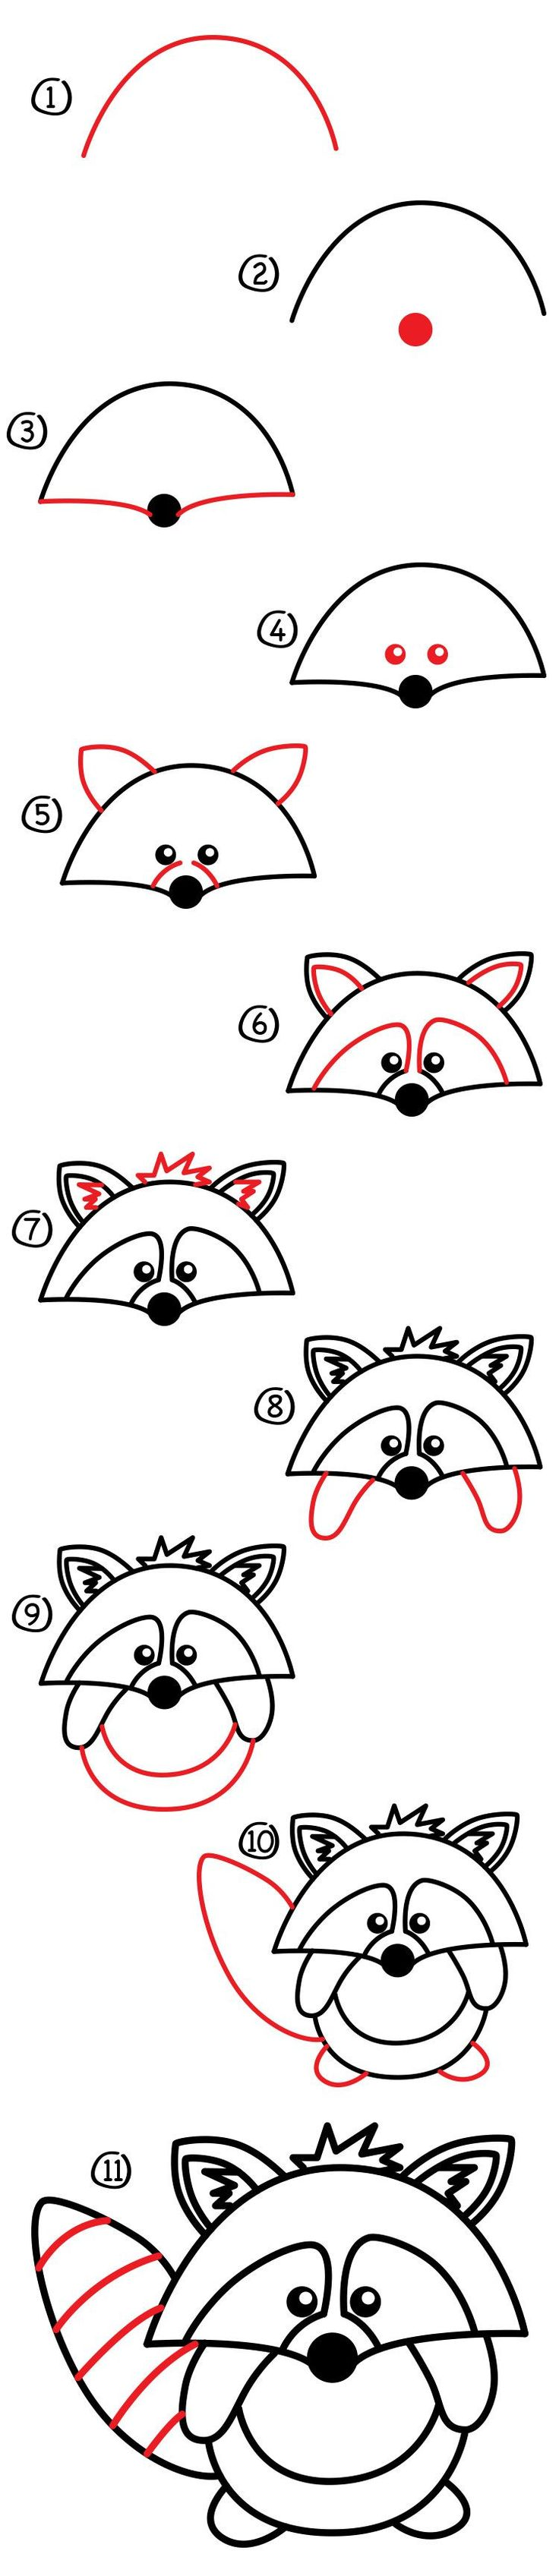 Here's a cute little guy, how to draw a raccoon! This one is easy, but still fun, even for those parents and teachers that like to draw along with their kids. Art Materials Pen, pencil, crayon, or marker Paper Watch How To Draw A Raccoon